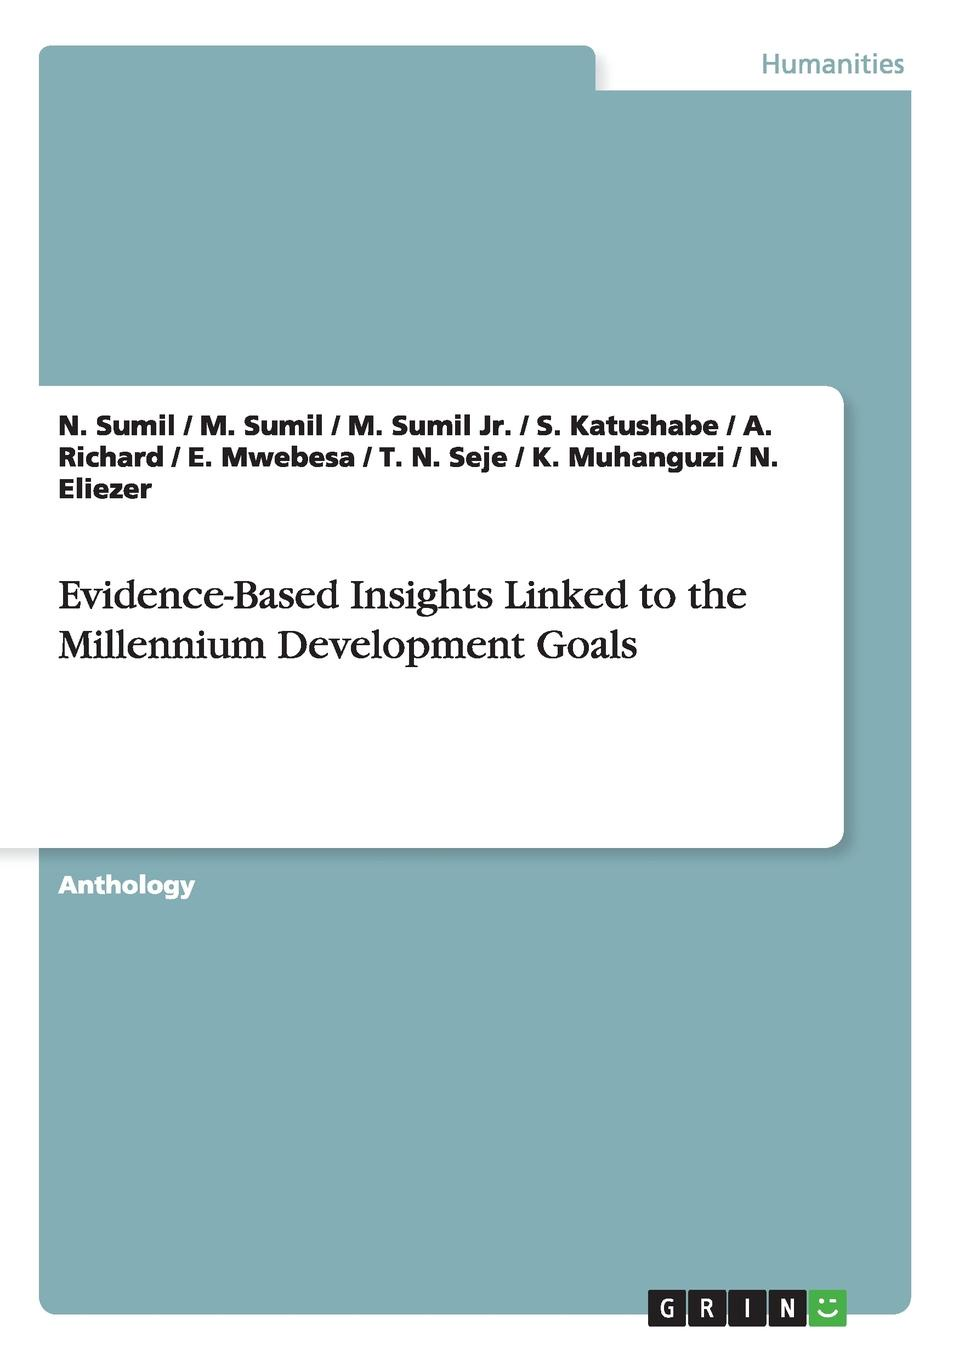 купить N. Sumil, M. Sumil, M. Sumil Jr. Evidence-Based Insights Linked to the Millennium Development Goals онлайн